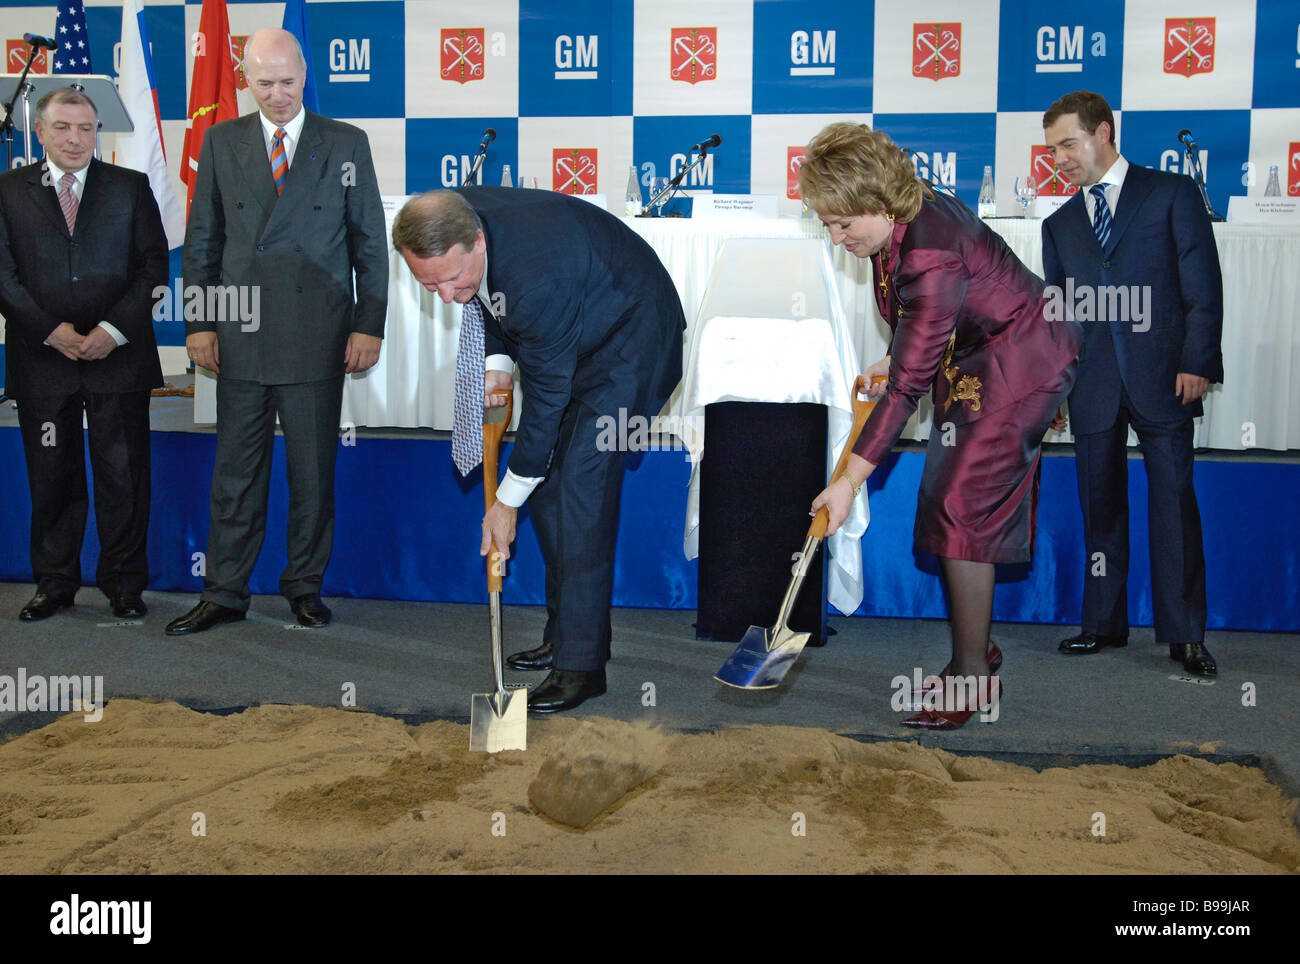 General Motors Chairman and CEO Rick Wagoner and St Petersburg Governor Valentina Matviyenko laying the foundation - Stock Image